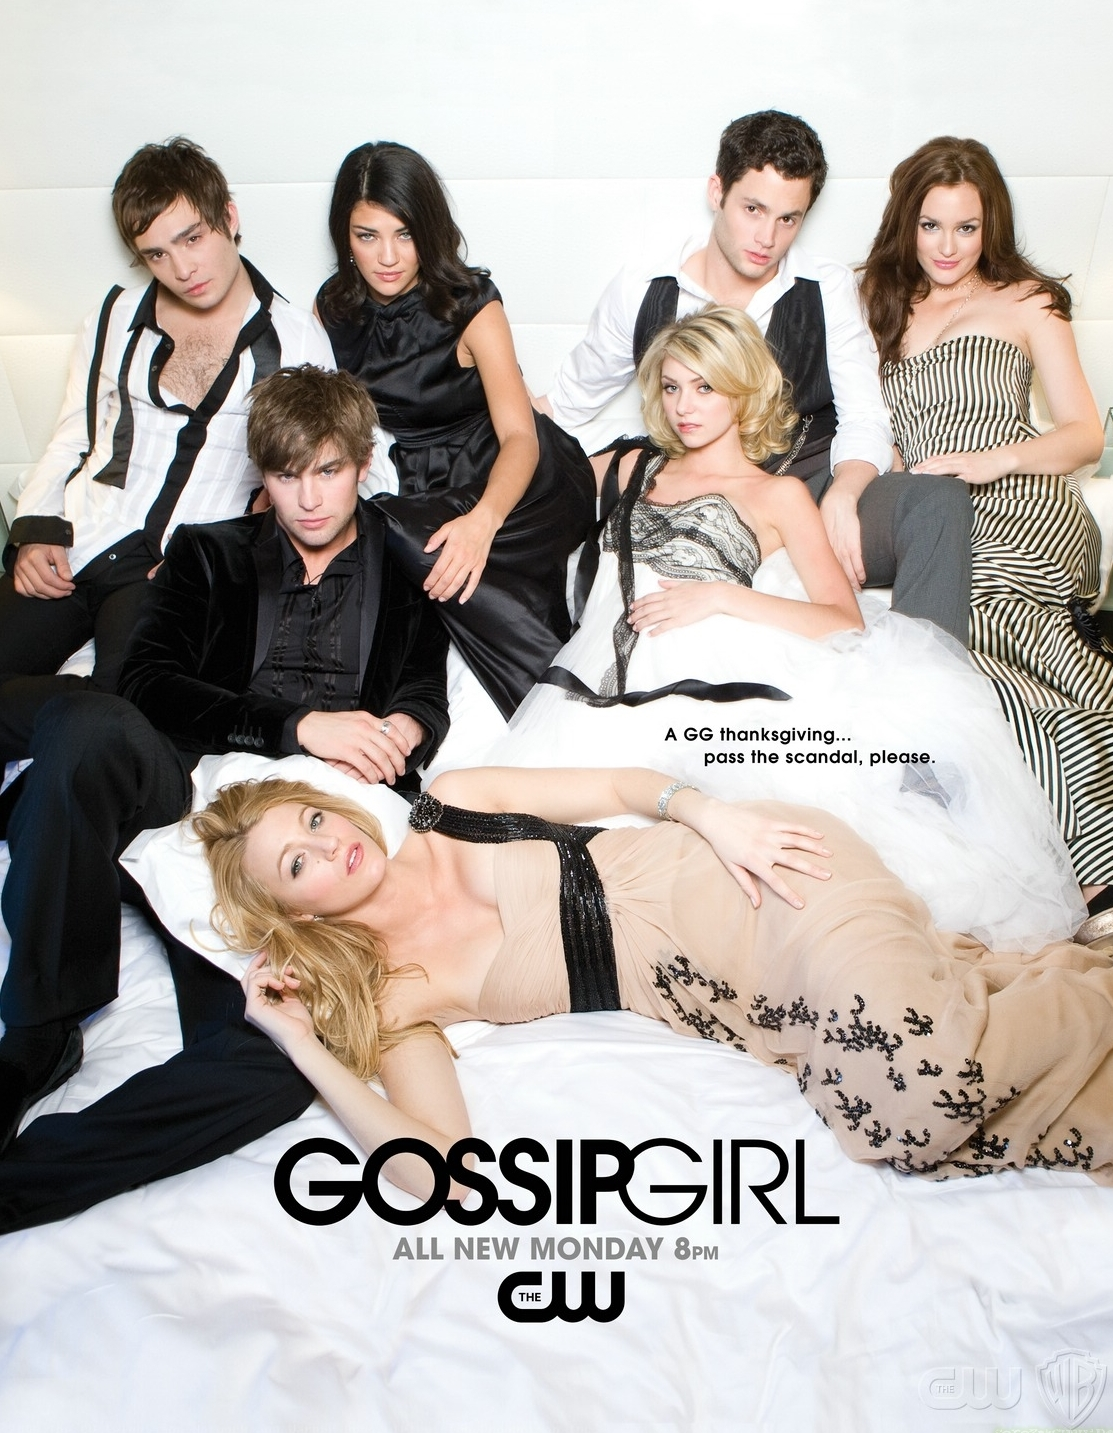 Gossip Girl (TV Series 2007–2012) - IMDb